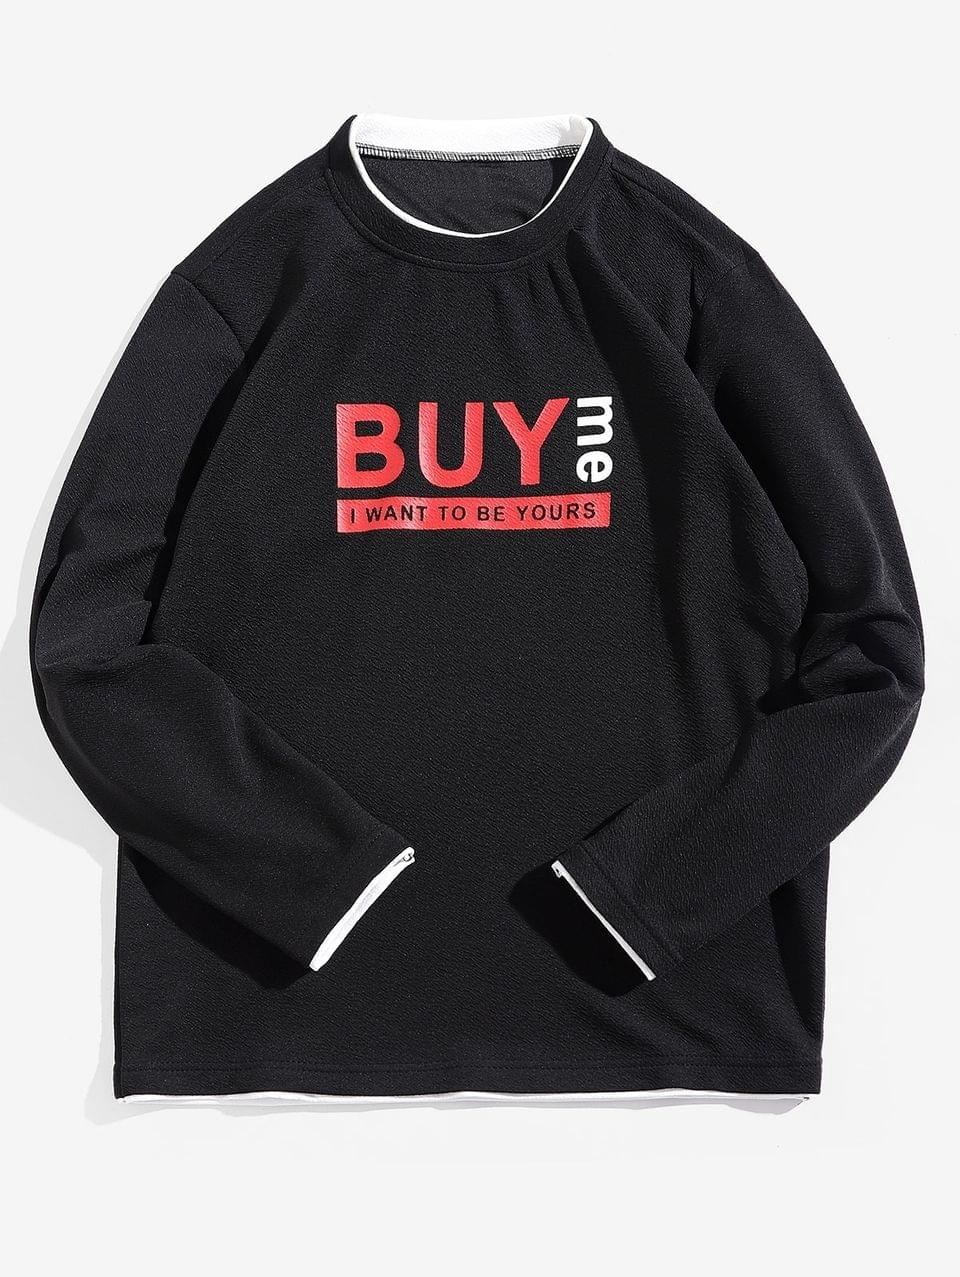 Men's Buy Me Letter Print Contrast Trim Spliced Sweatshirt - Black S